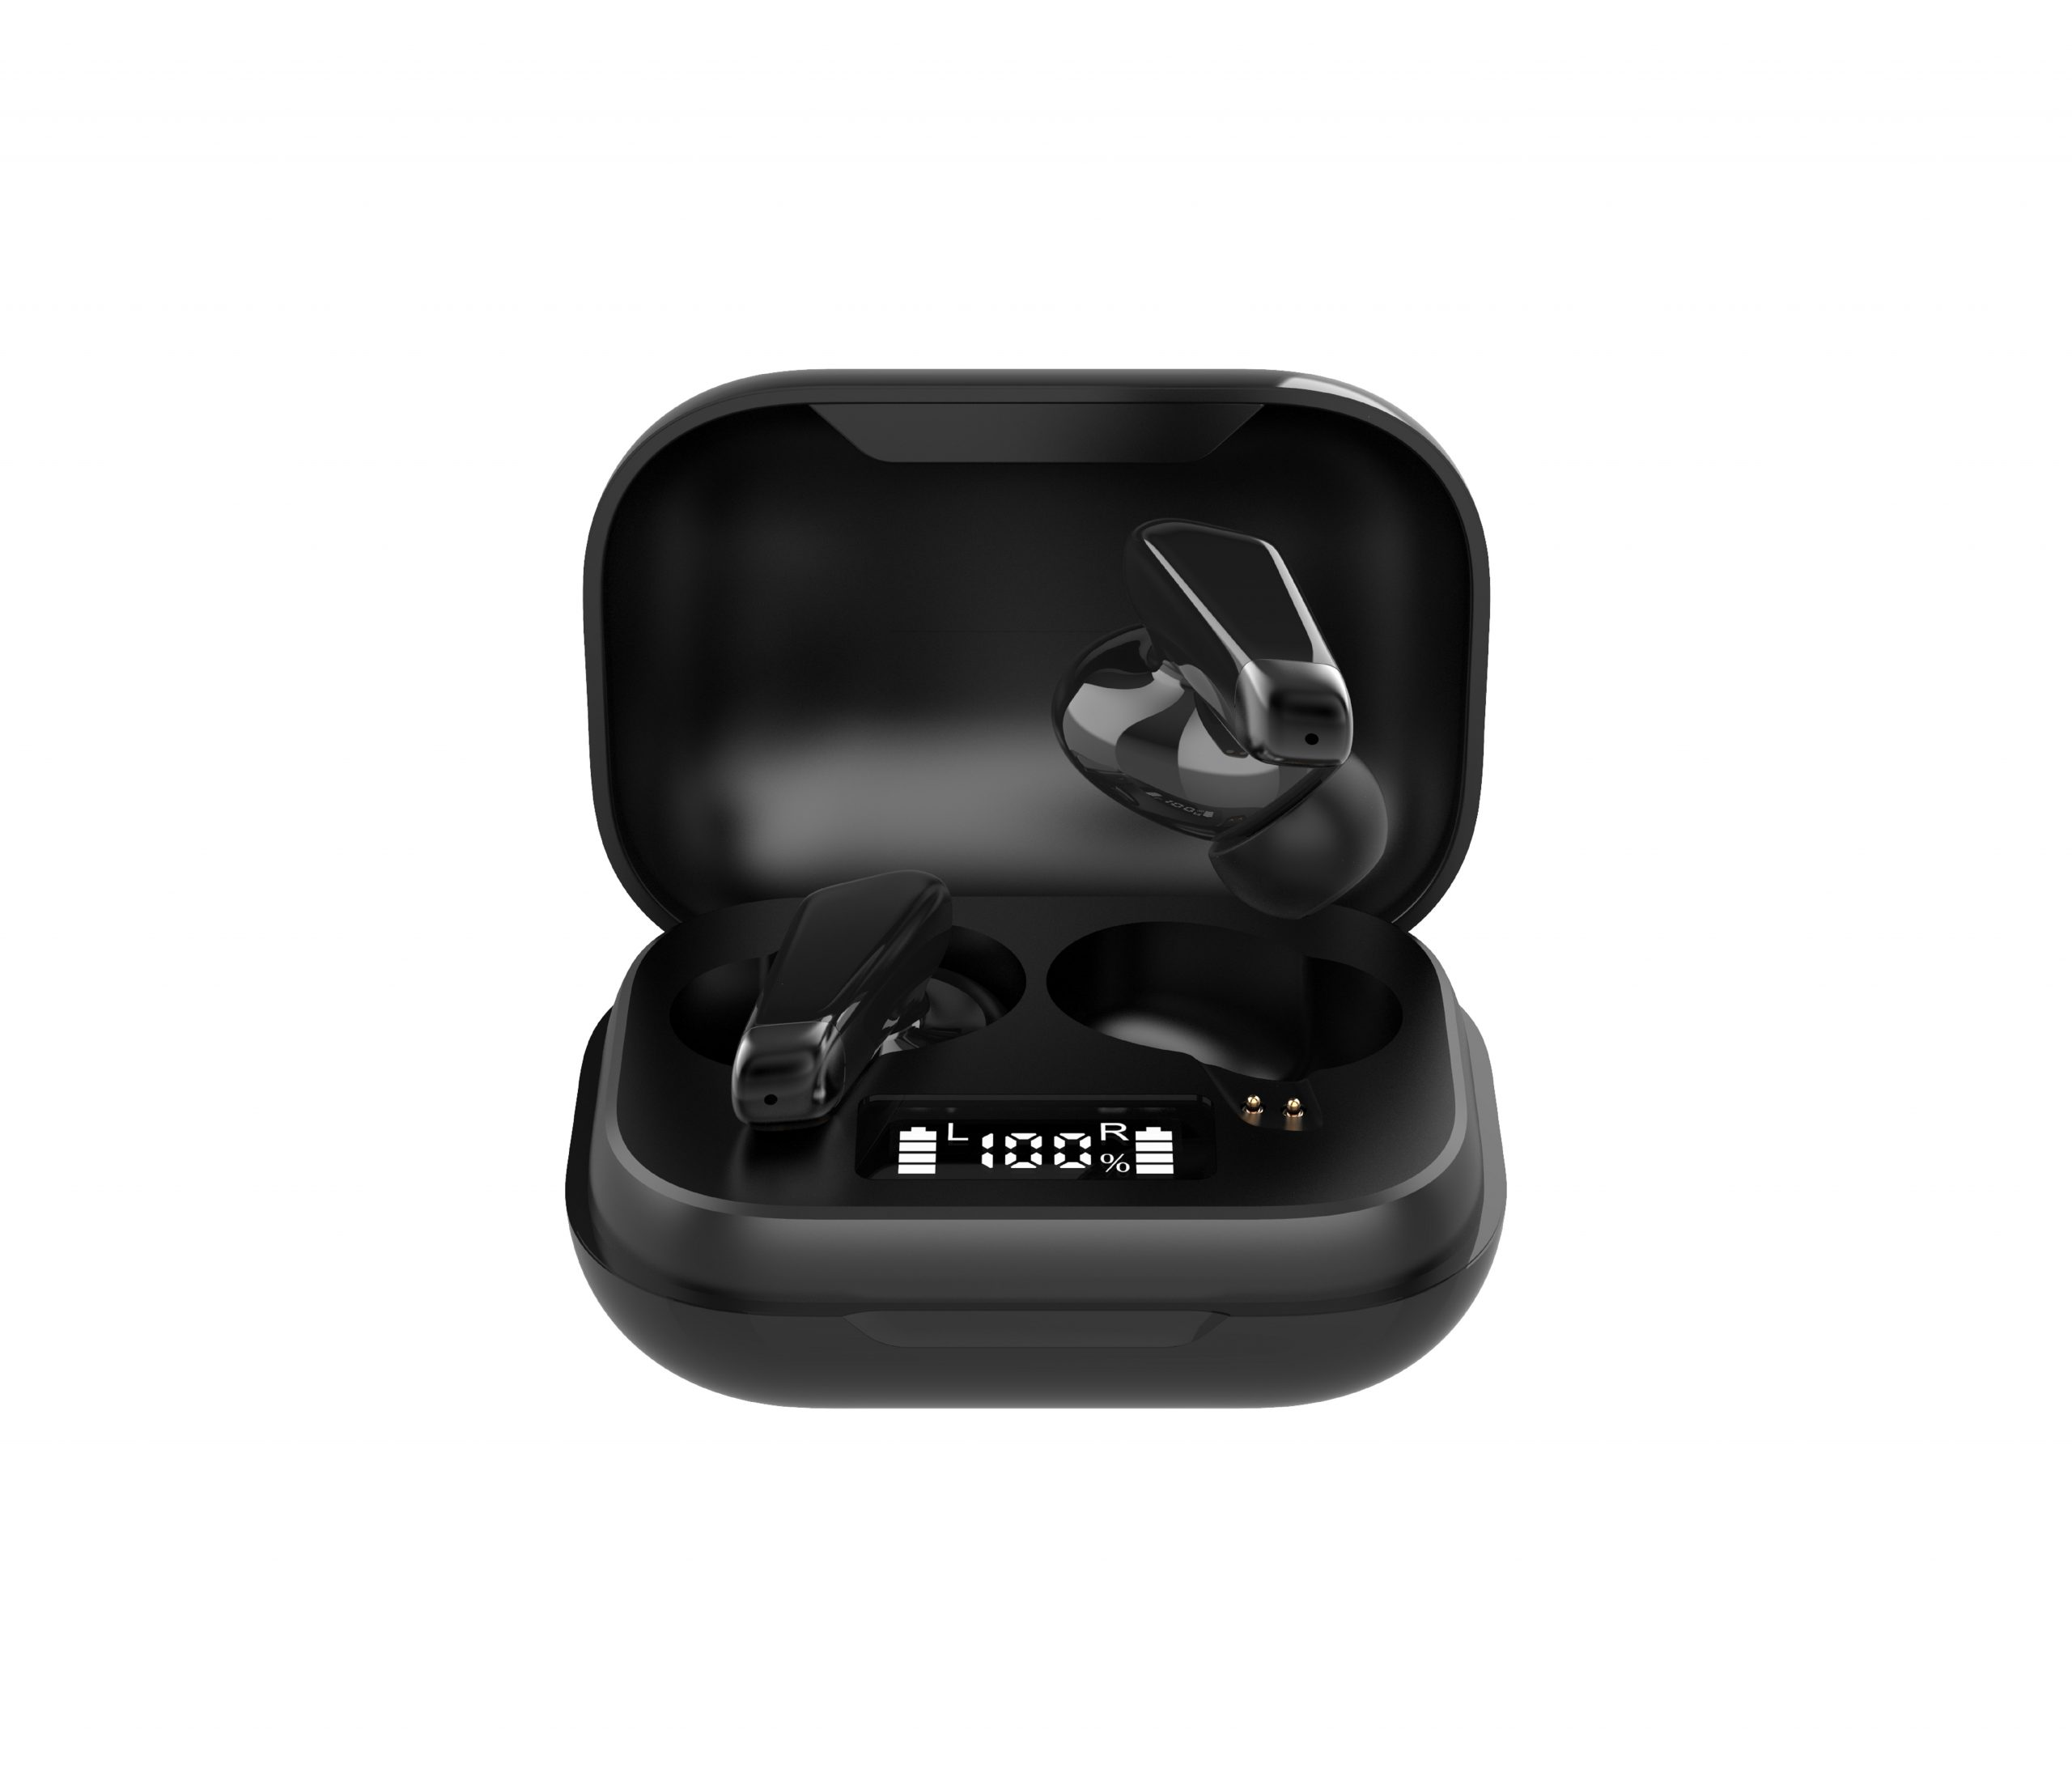 Ambrane NeoBuds TWS earbuds with long battery life launched in India